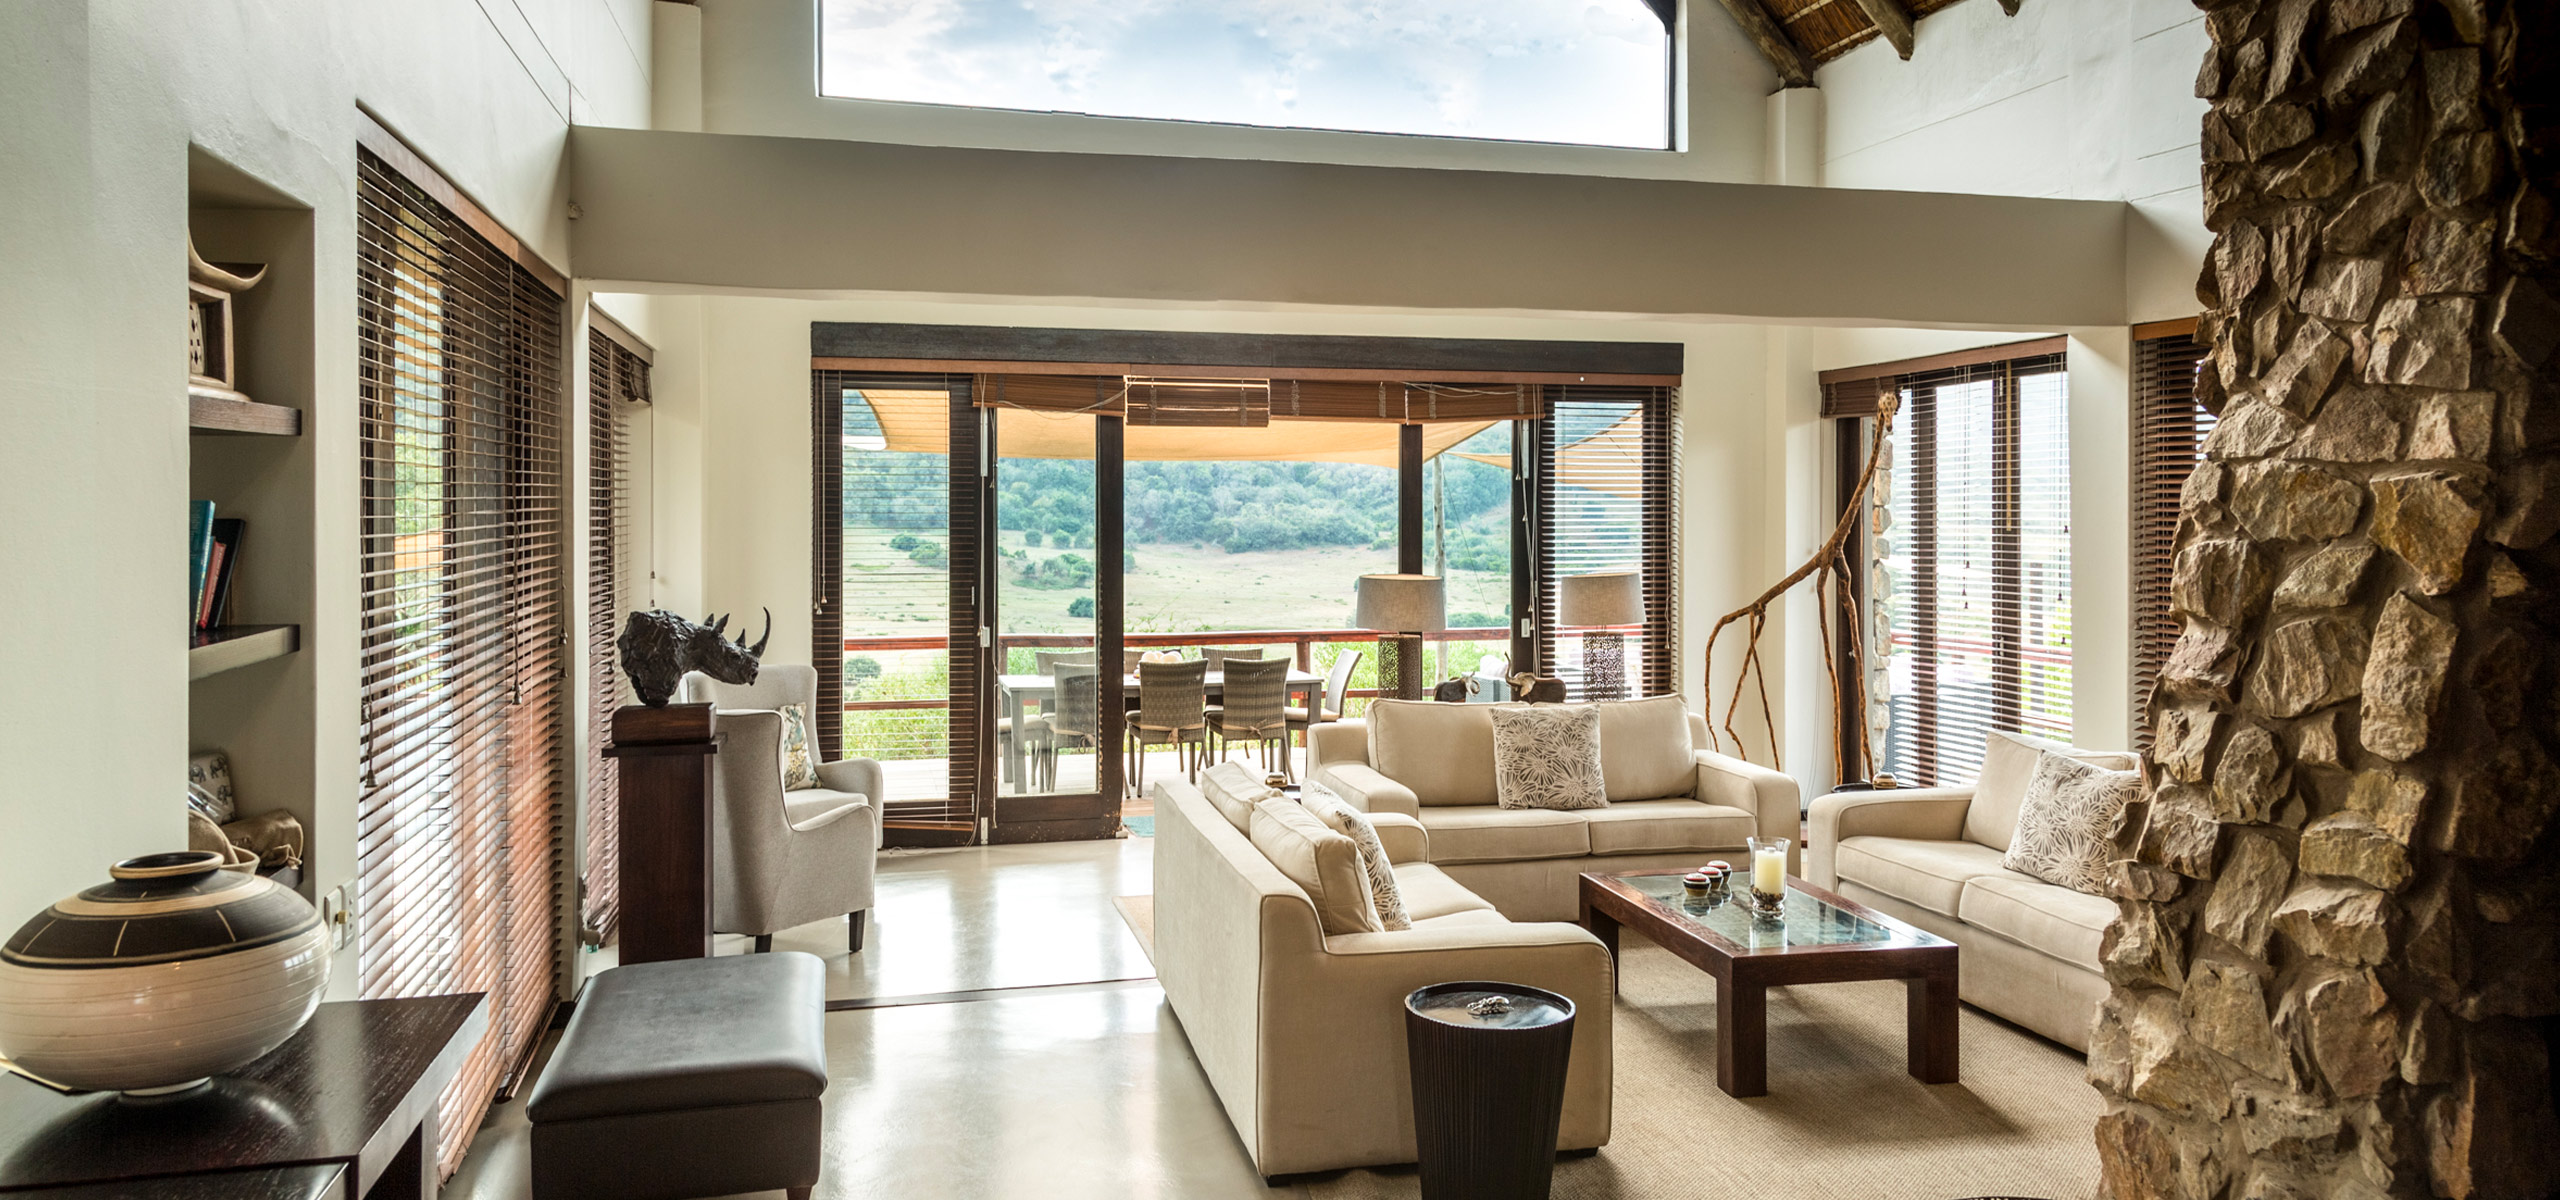 Hopewell-Private-Game-Reserve-Lodge-Lounge-View